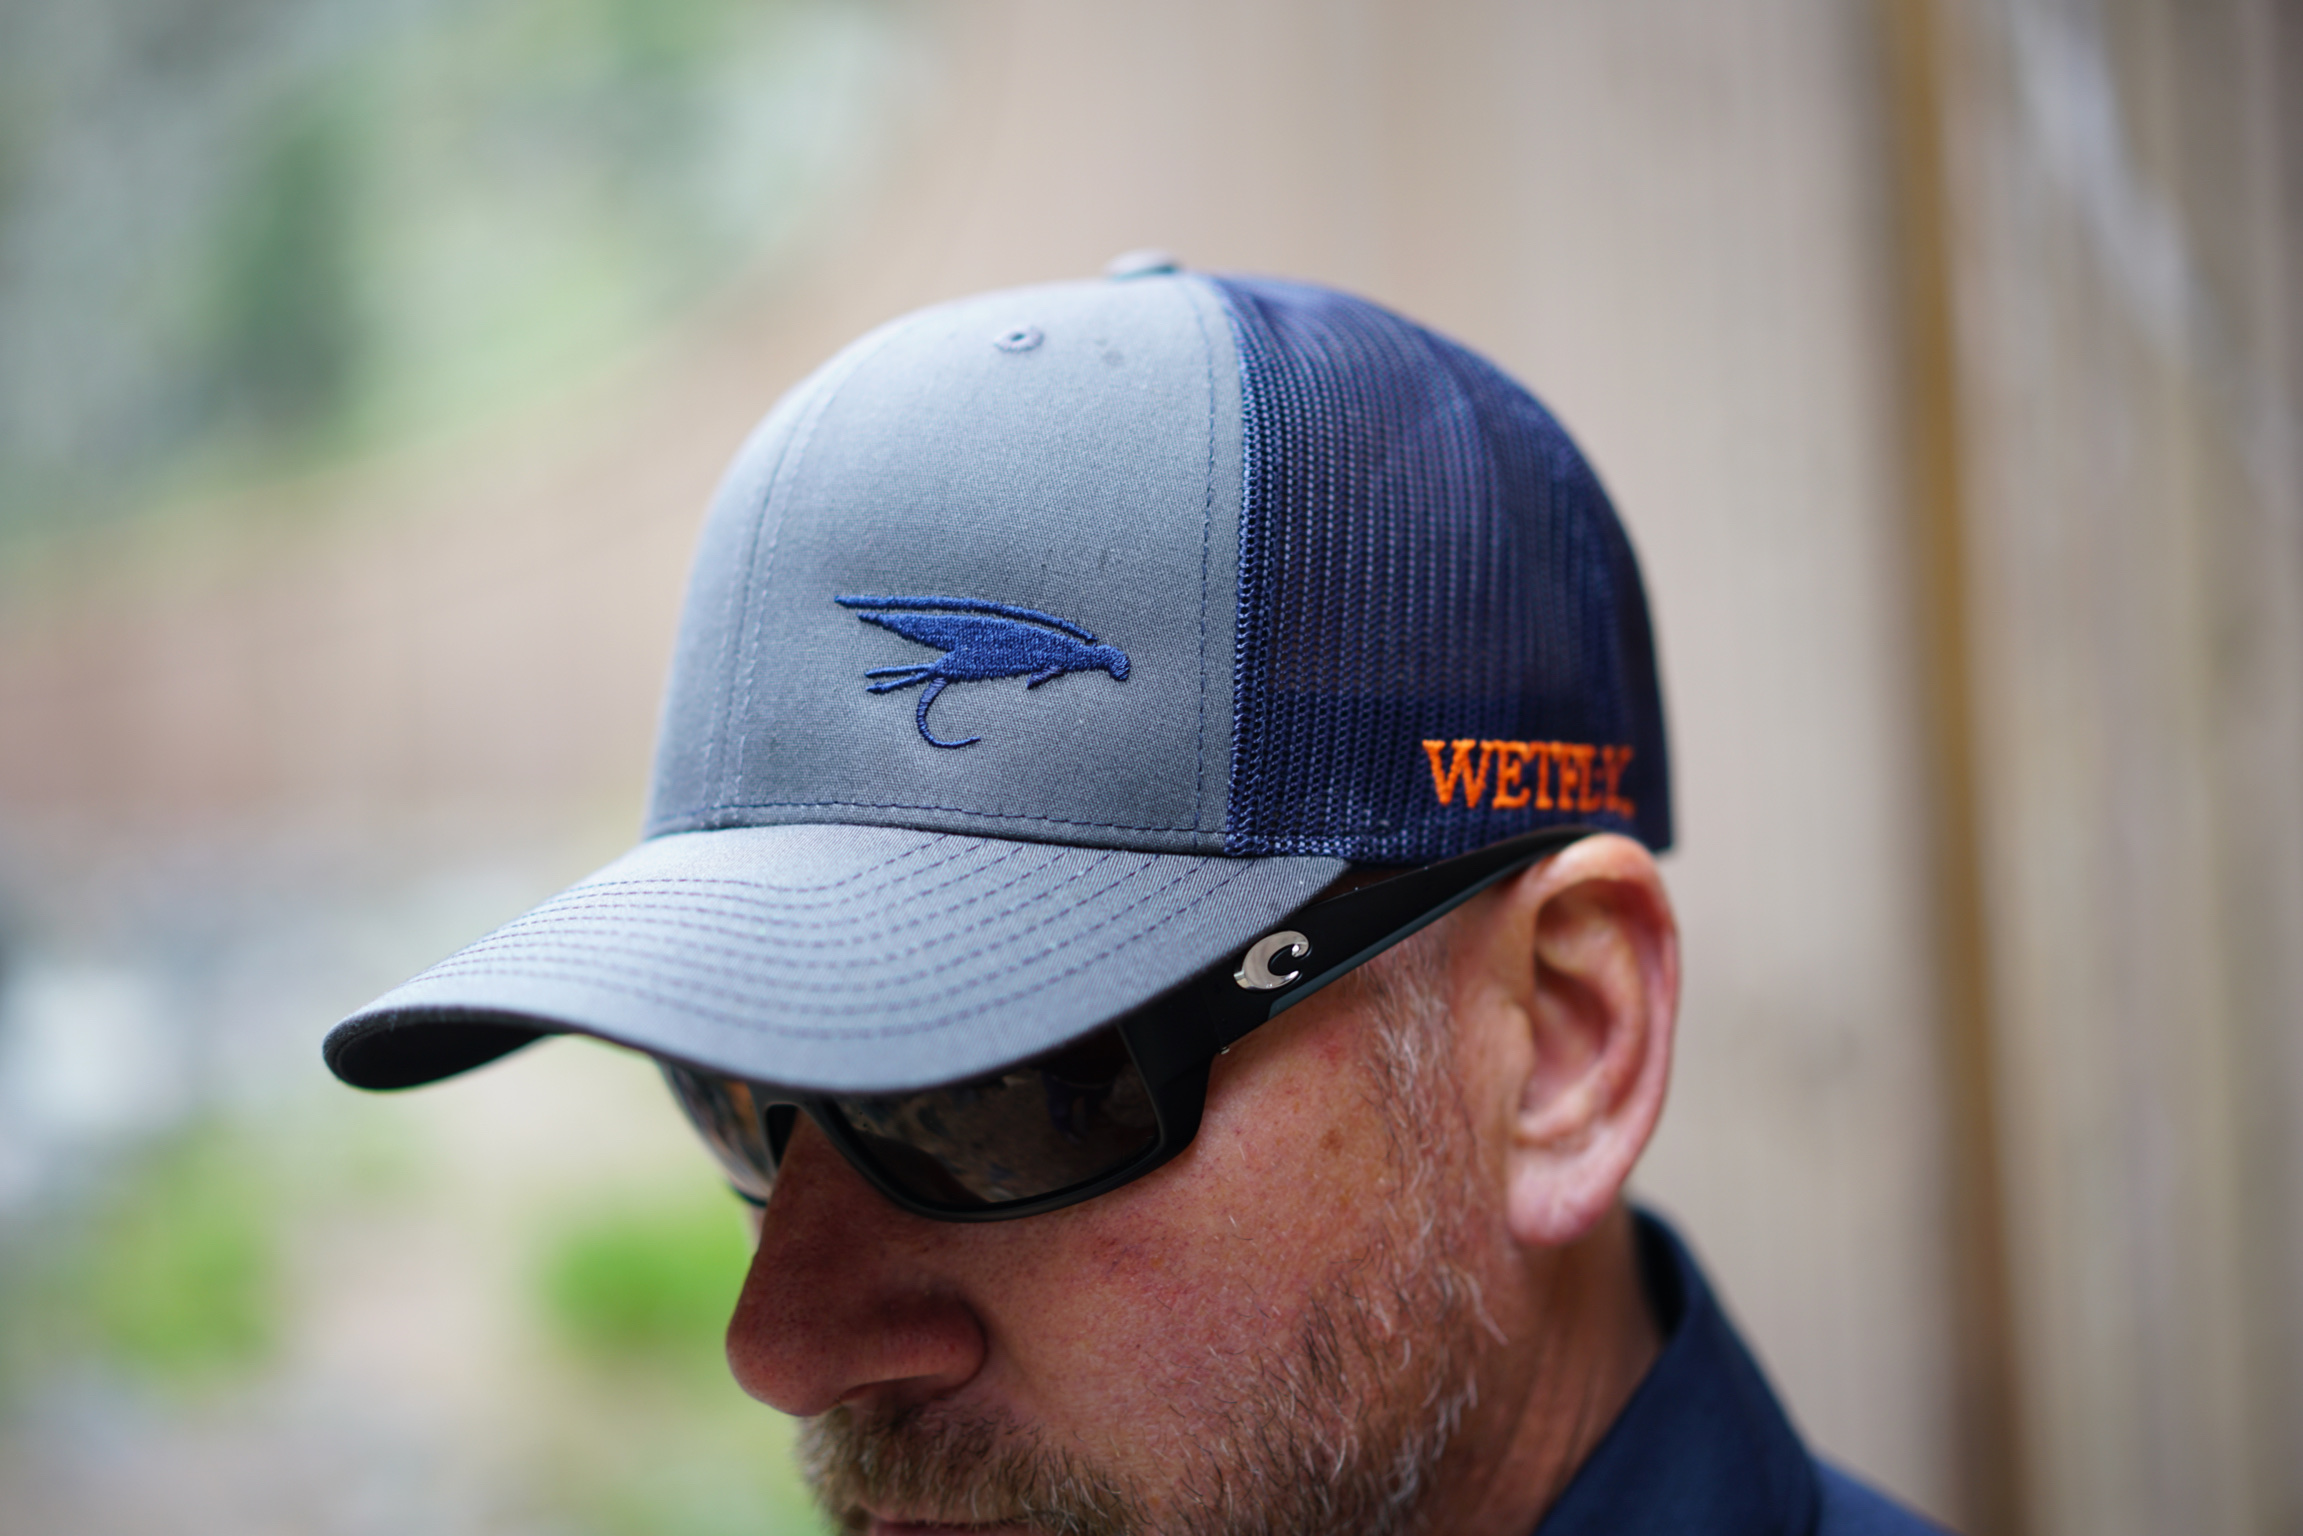 WETFLY Structured Classic Trucker Snapback Sail Fish